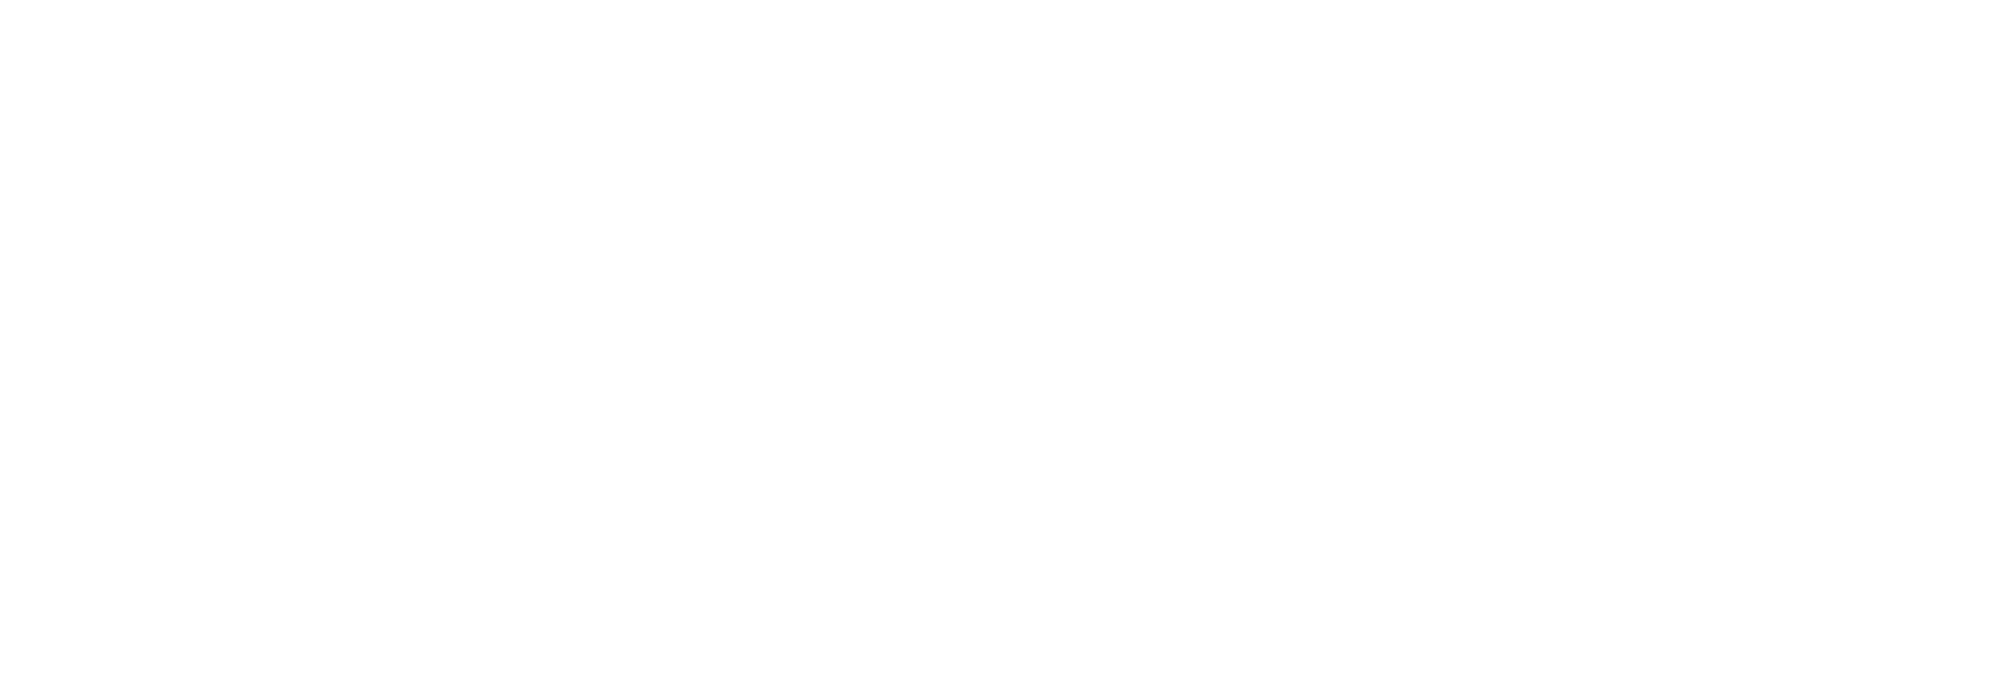 Comcast logo in white